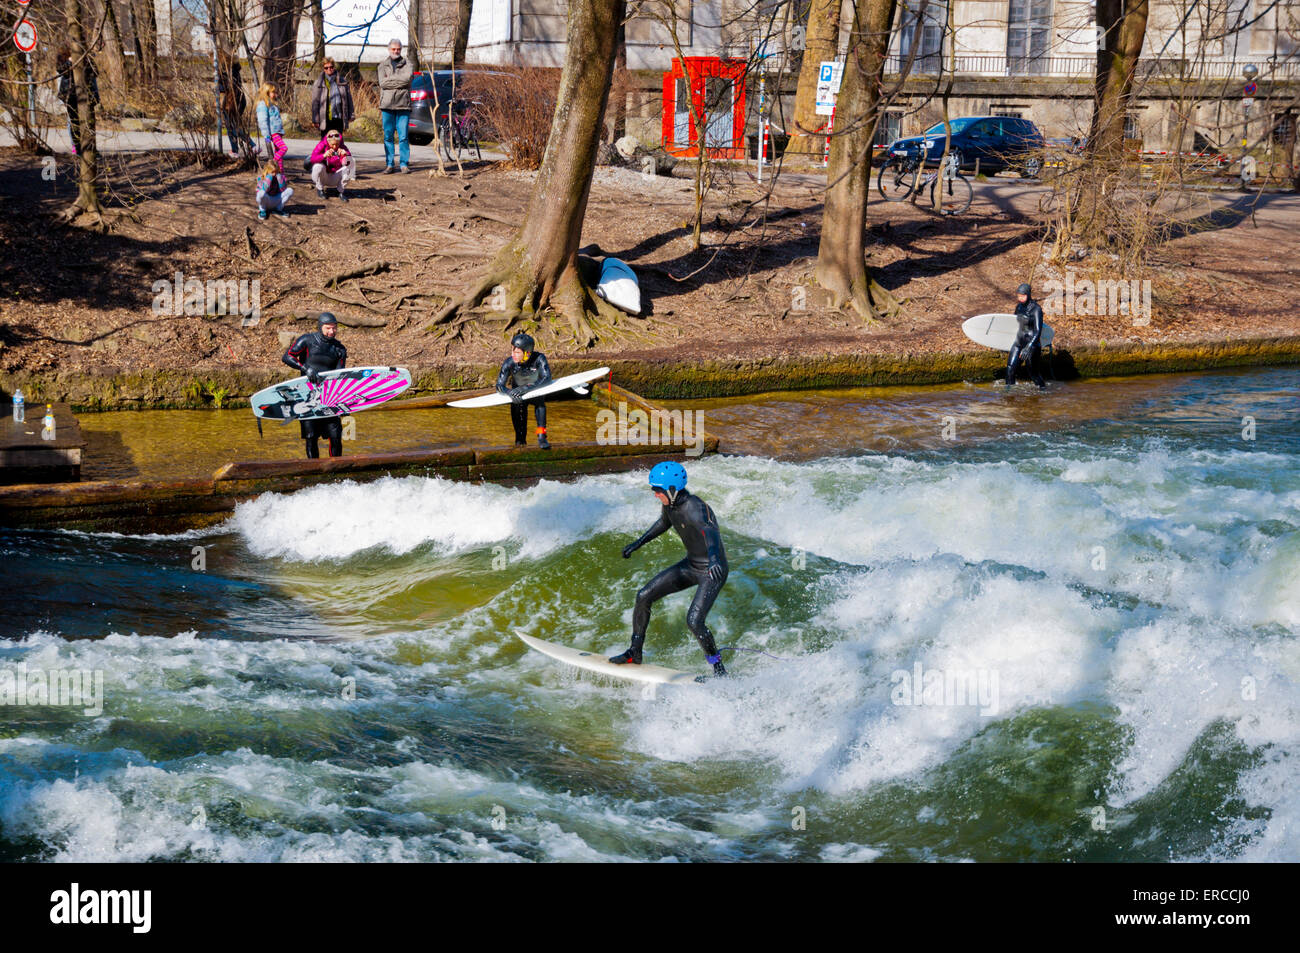 Surfers at wave produced by pumping machine, Eisbach stream, Englischer Garten, park, central Munich, Bavaria, Germany - Stock Image